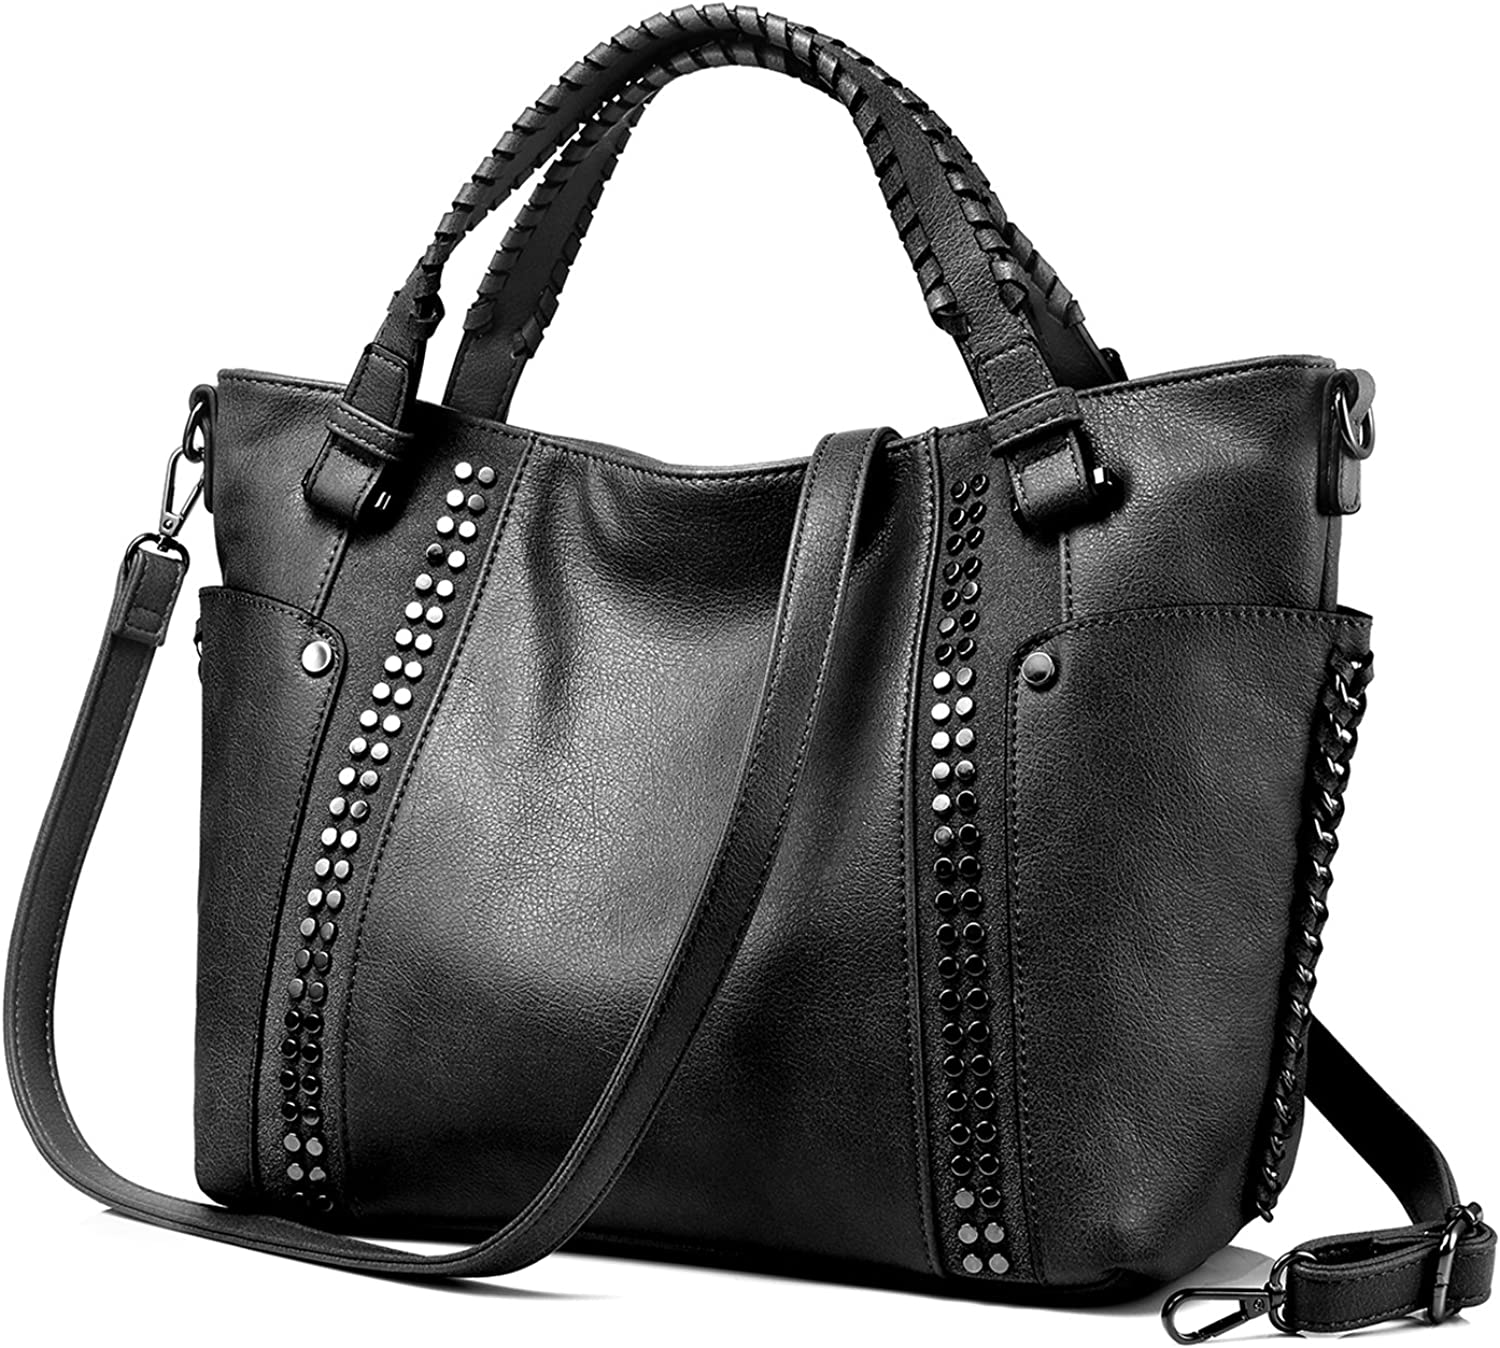 Ladies Tote Shoulder Bags Womens Fashion Medium Size Faux Leather Handbags New